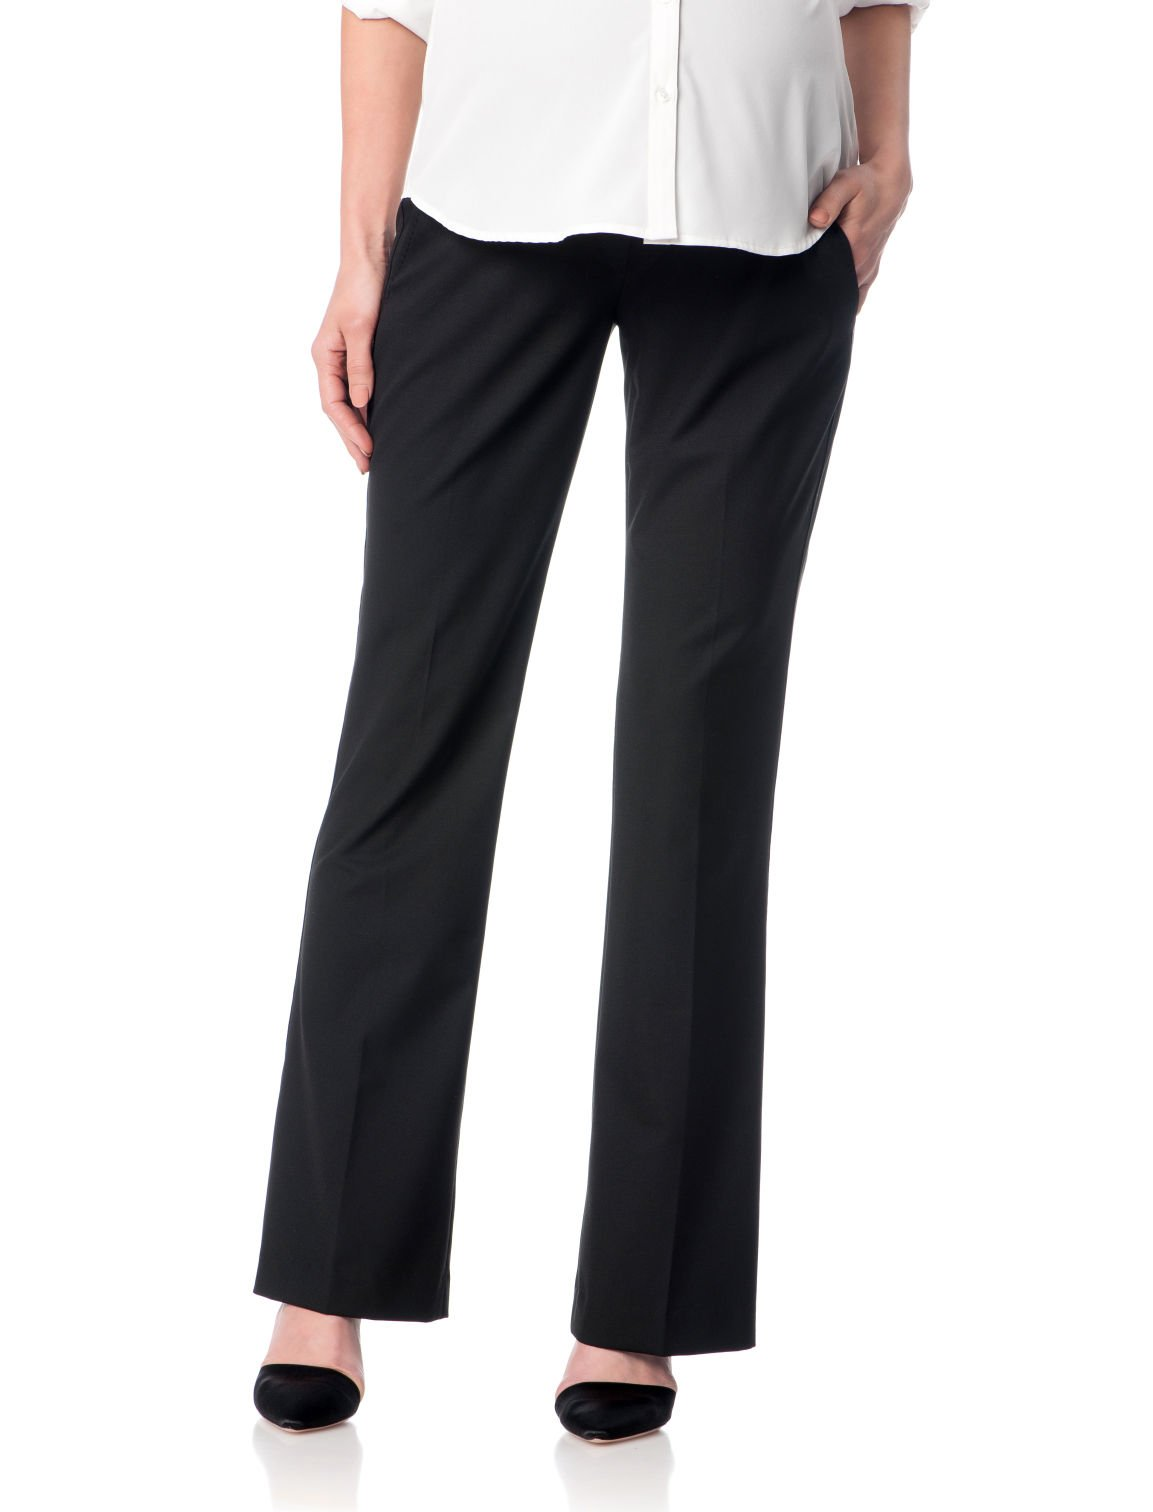 A Pea in the Pod Bi-Stretch Suiting Bootcut Maternity Pants